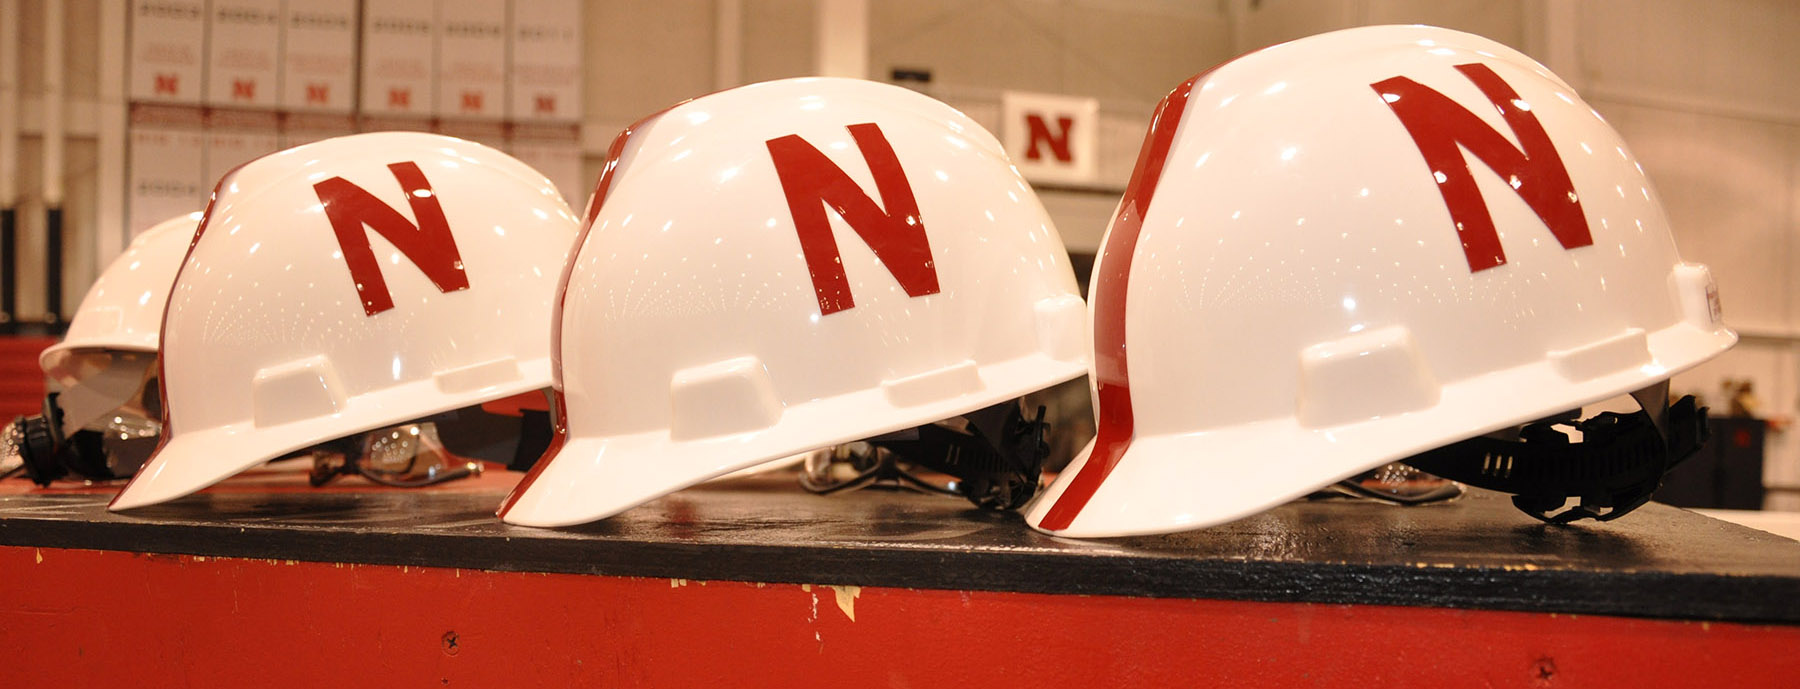 hard hats with N logo